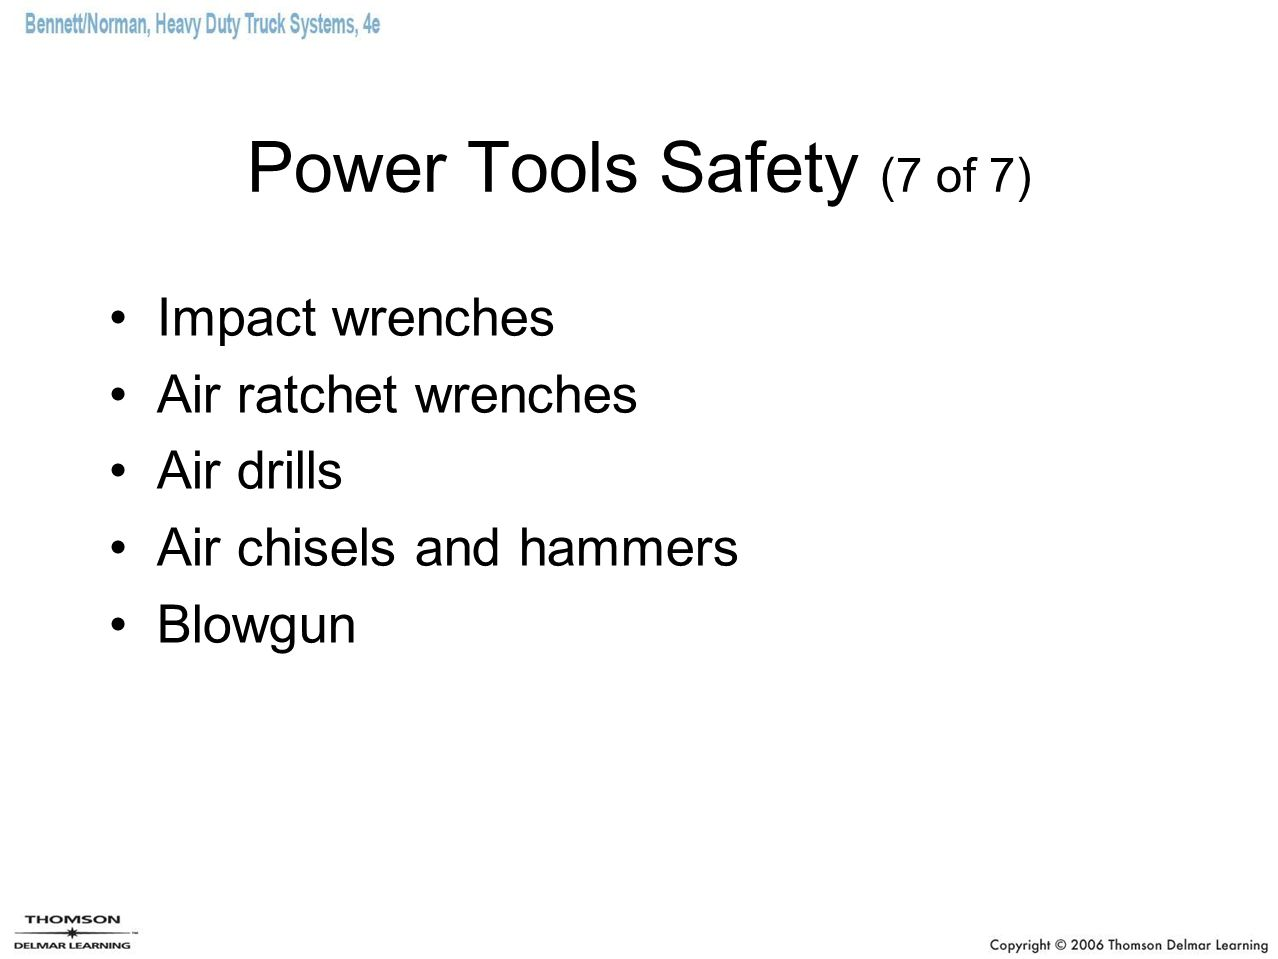 Power Tools Safety (7 of 7)